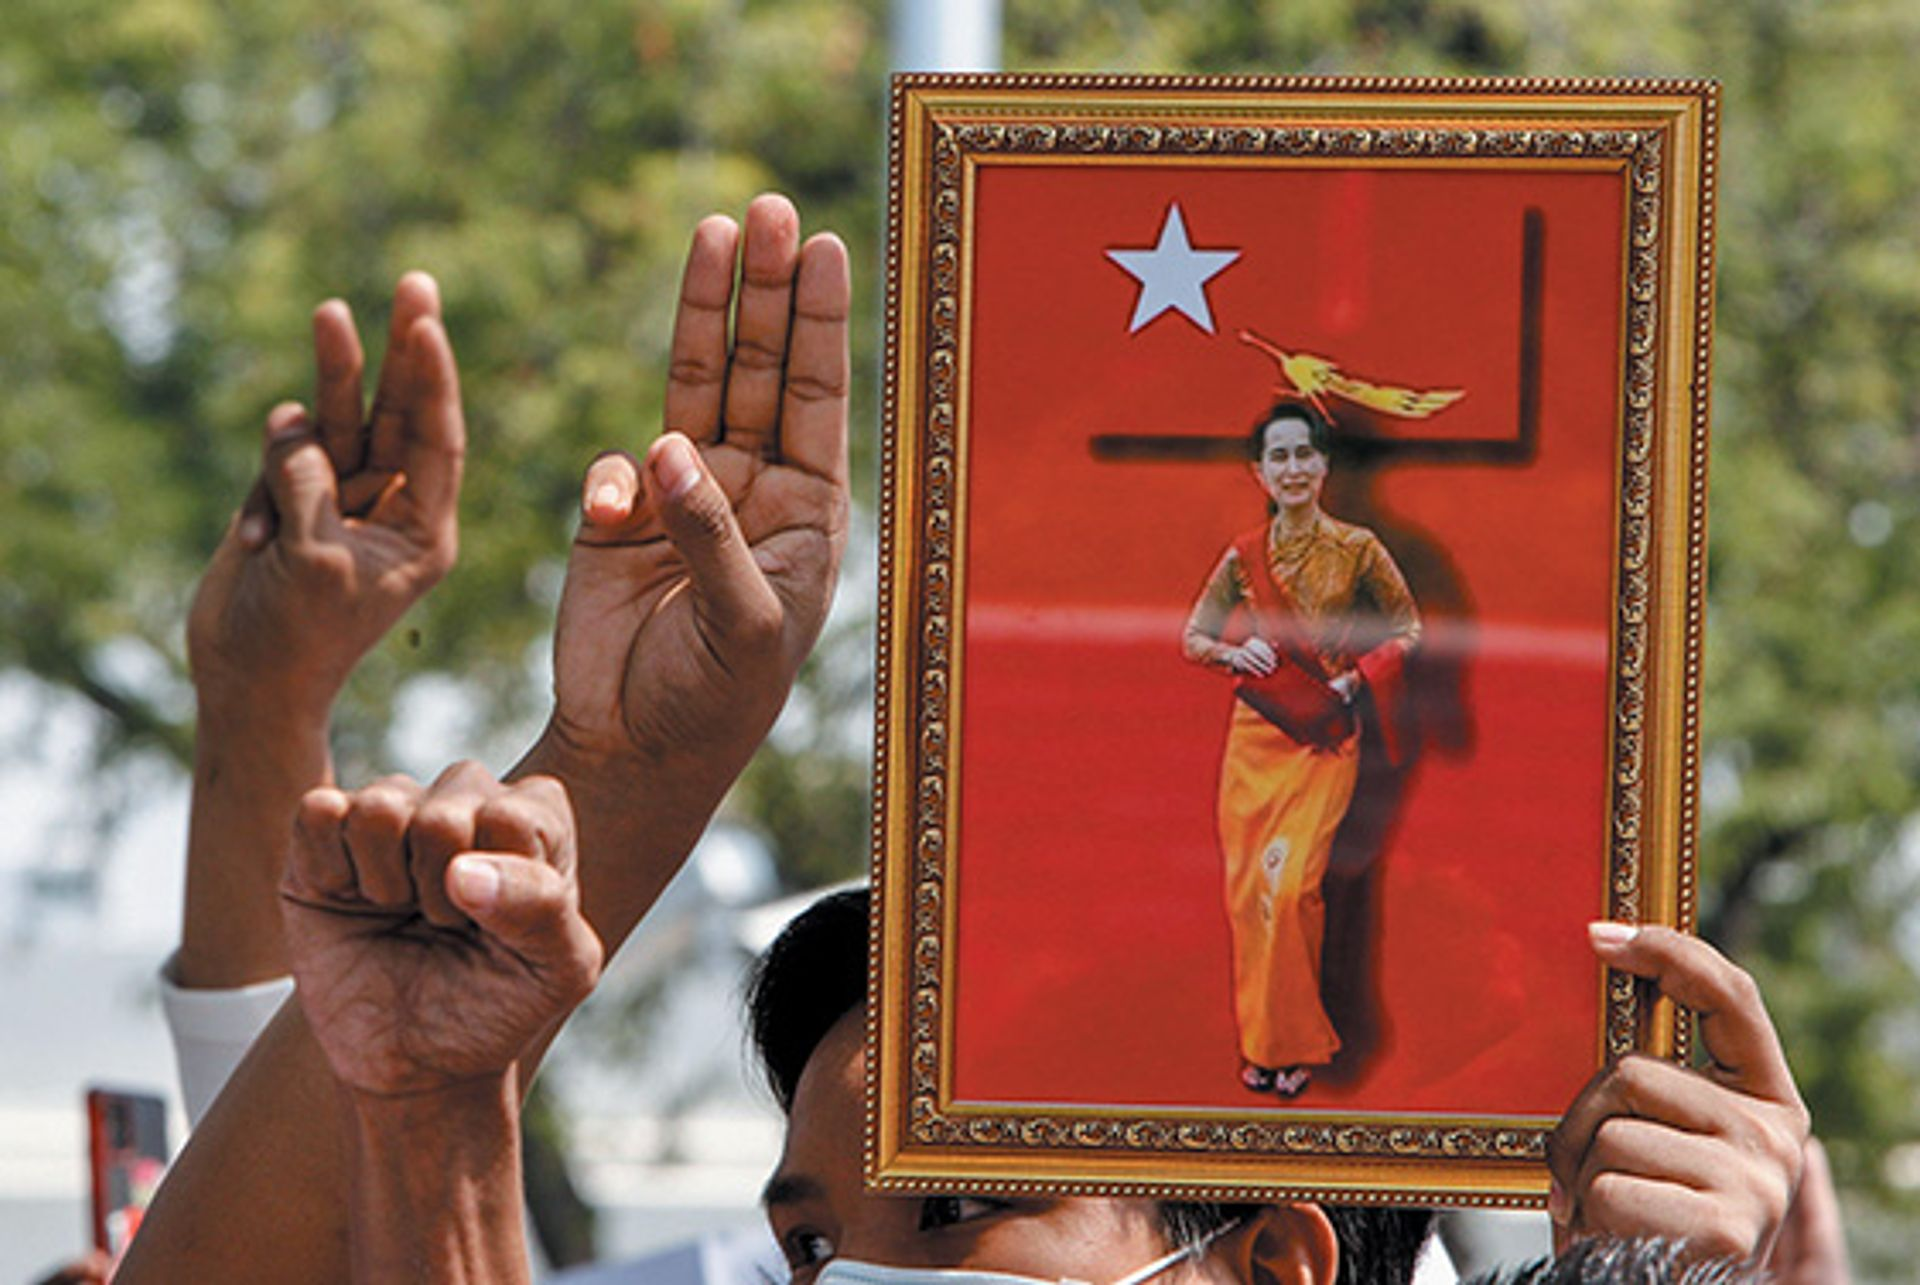 Supporters of Aung San Suu Kyi, leader of the National League for Democracy party, call for her release from Myanmar's military Alamy stock photo